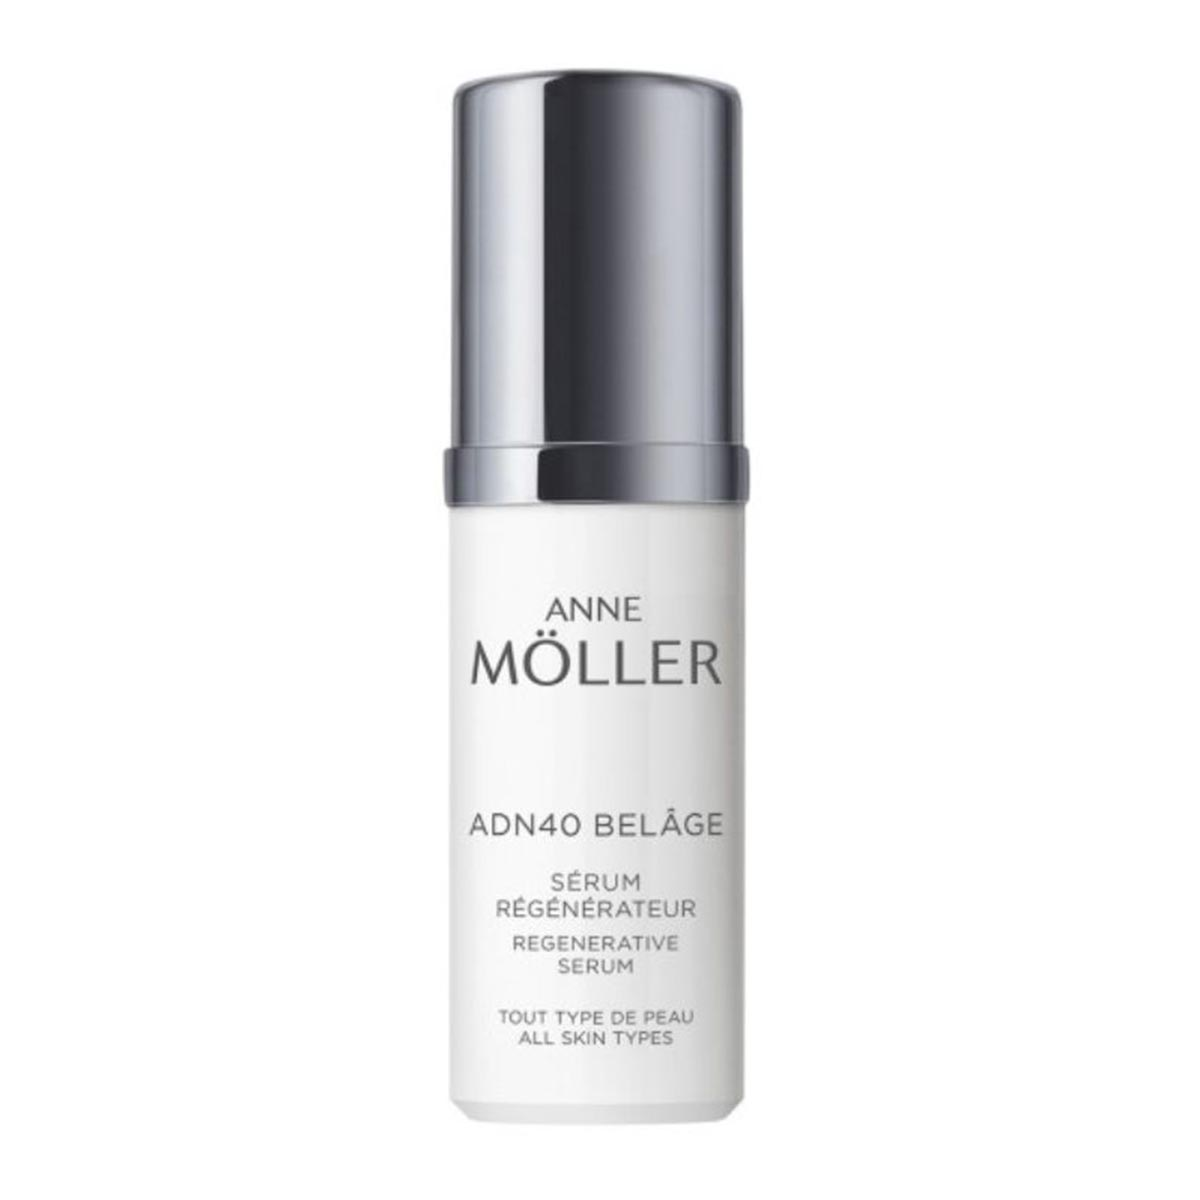 Anne moller adn40 belage serum regenerateur 30ml